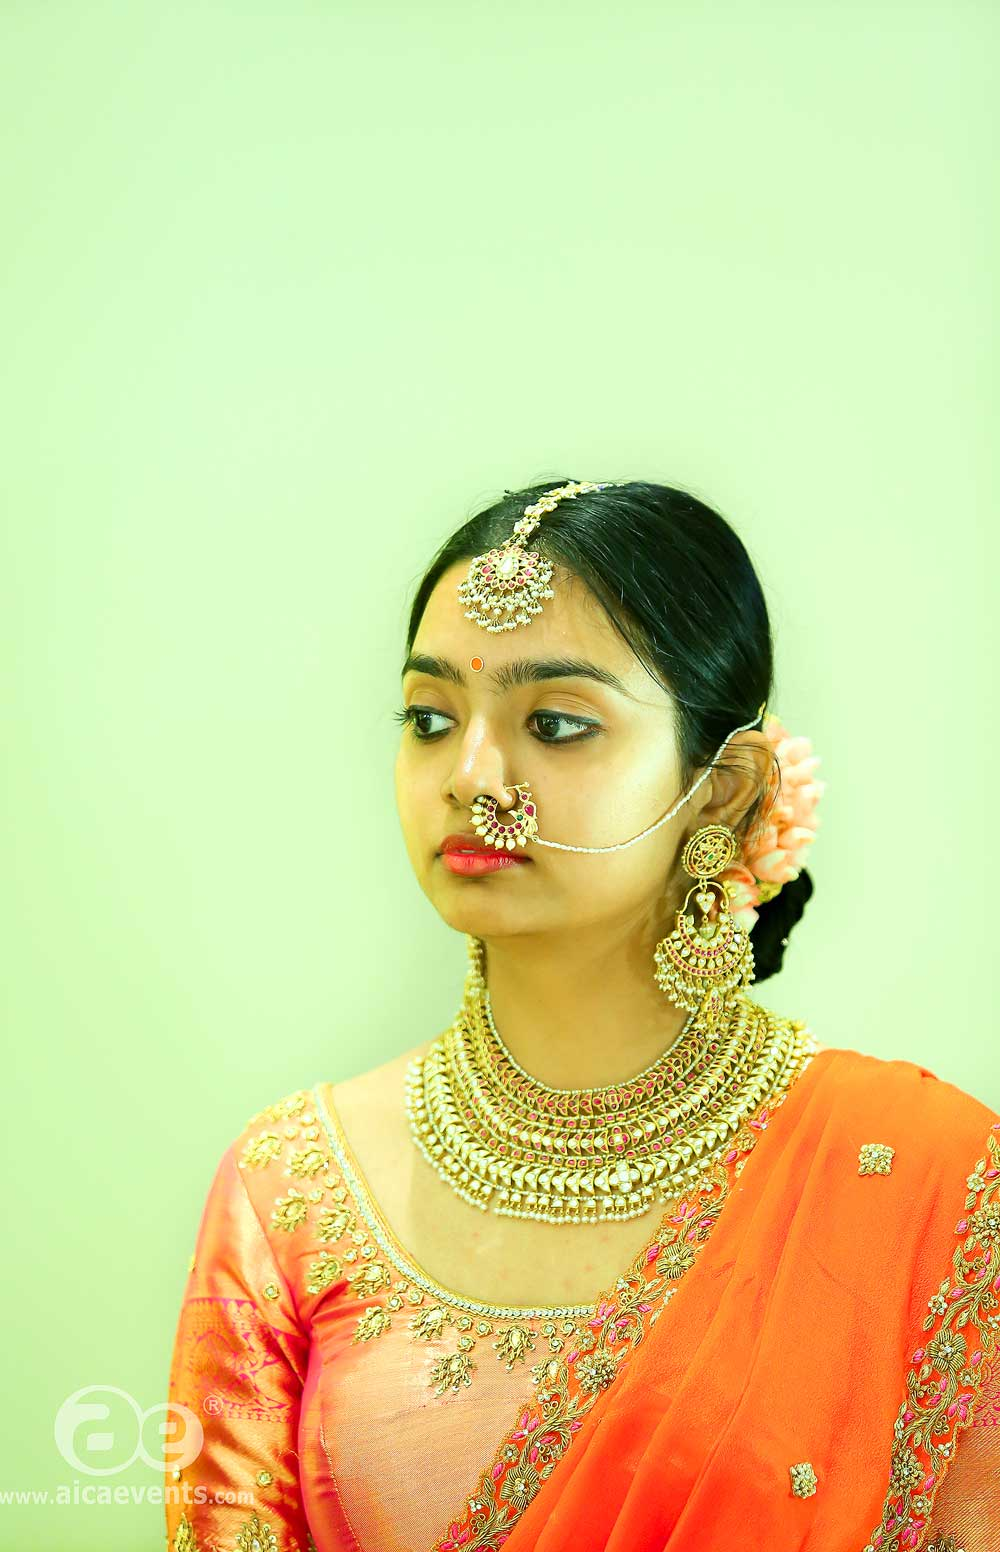 halfsaree Lagadapati daughter